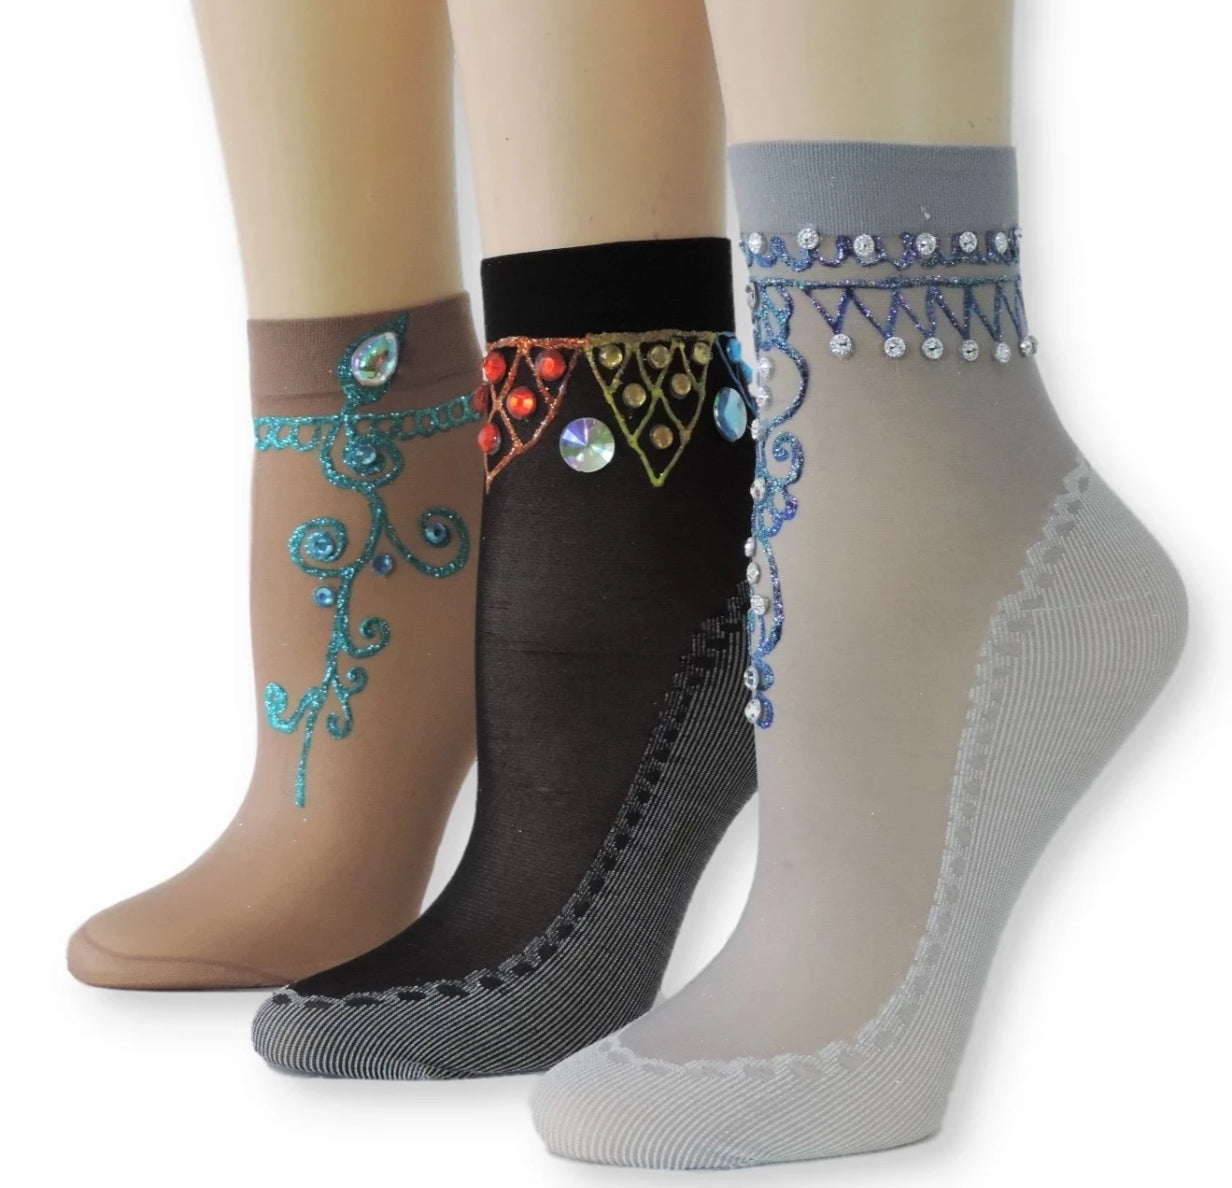 Henna Sheer Socks (Pack of 3 Pairs) - Global Trendz Fashion®